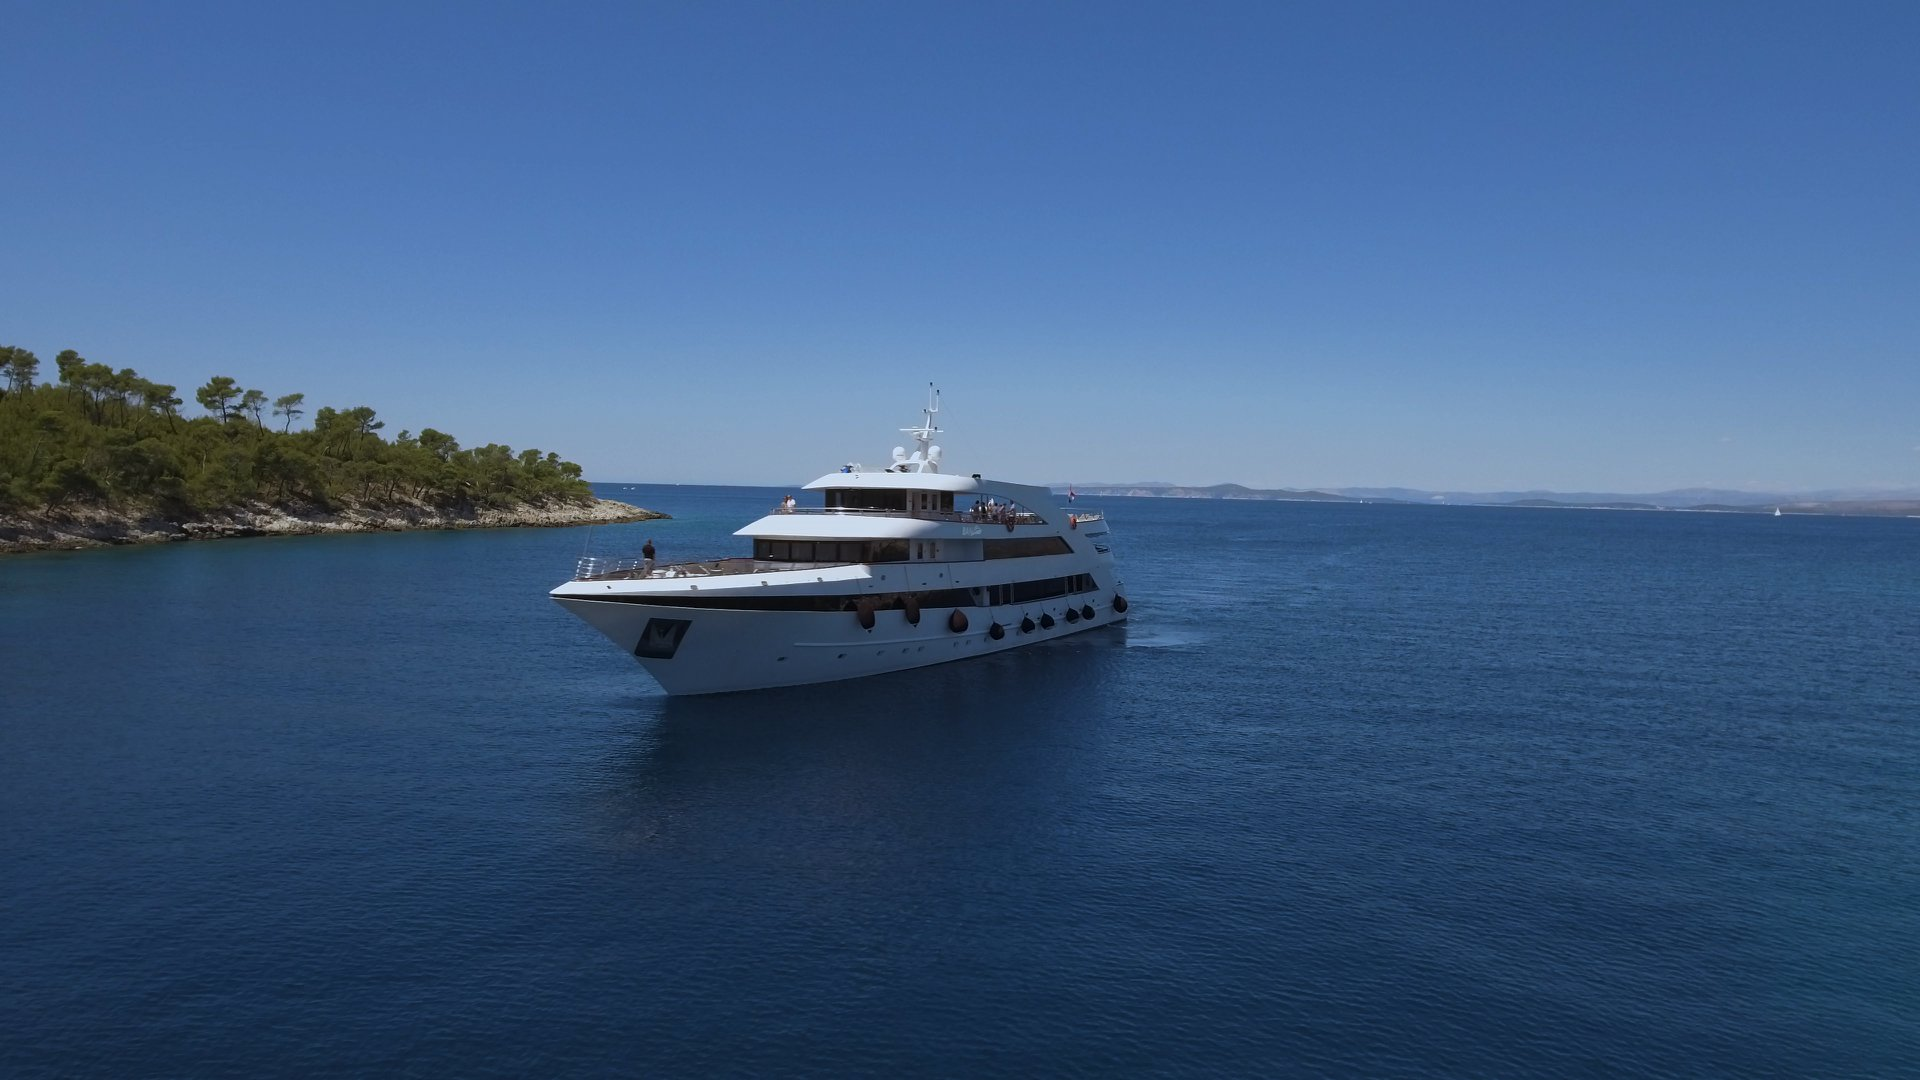 Adriatic Discovery Cruise from Dubrovnik to Split on Ban 4